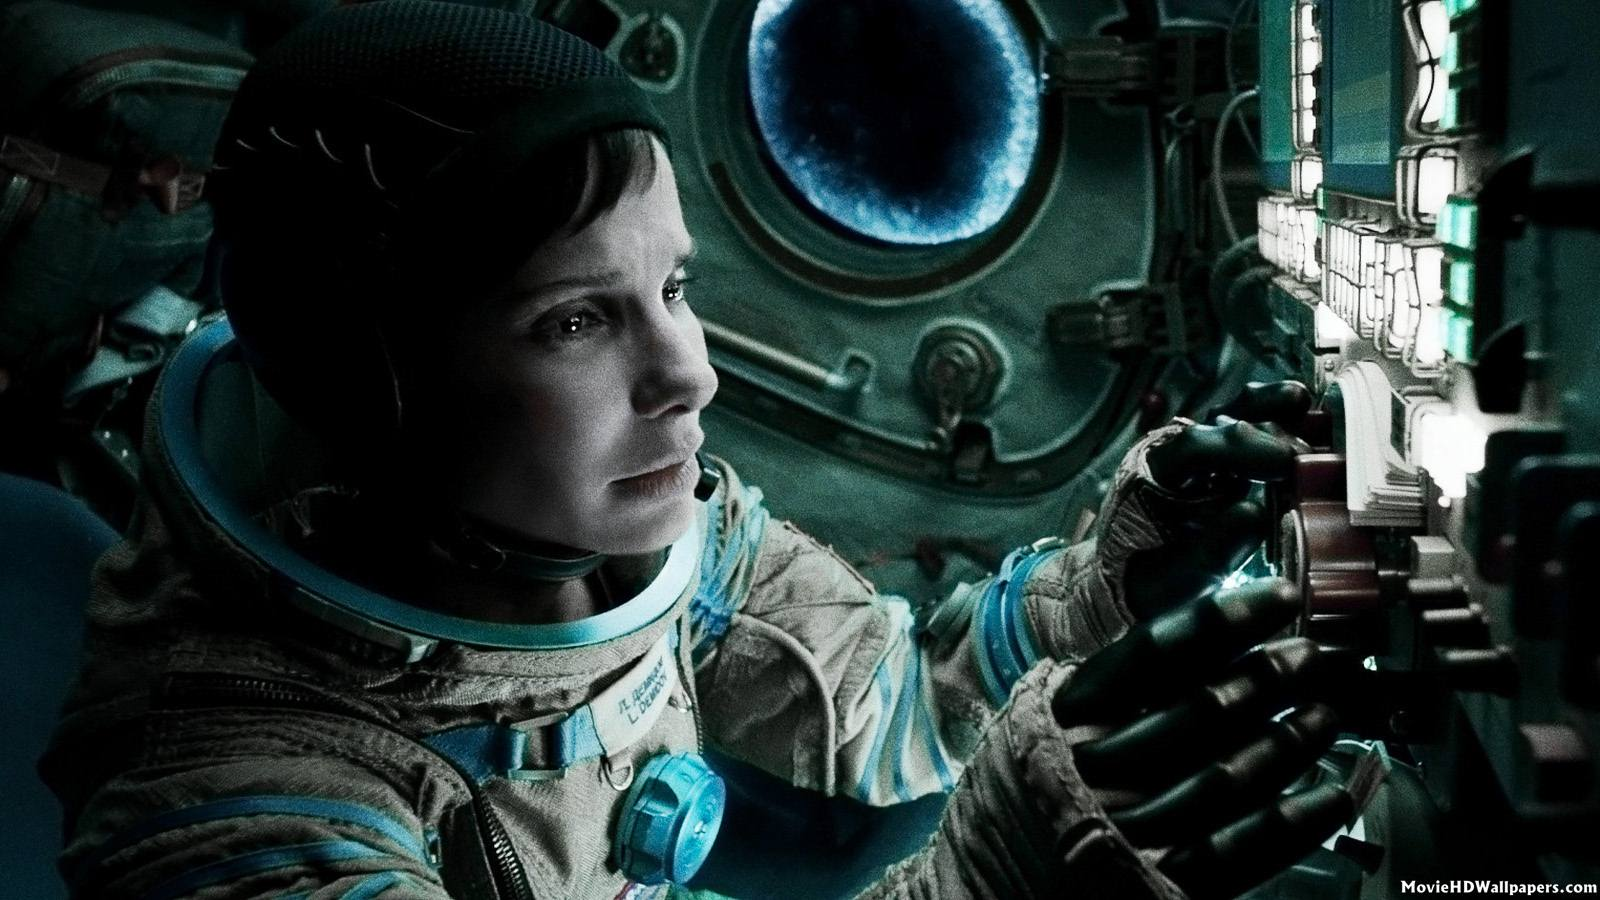 gravity-2013-movie-stills | signs and sirens